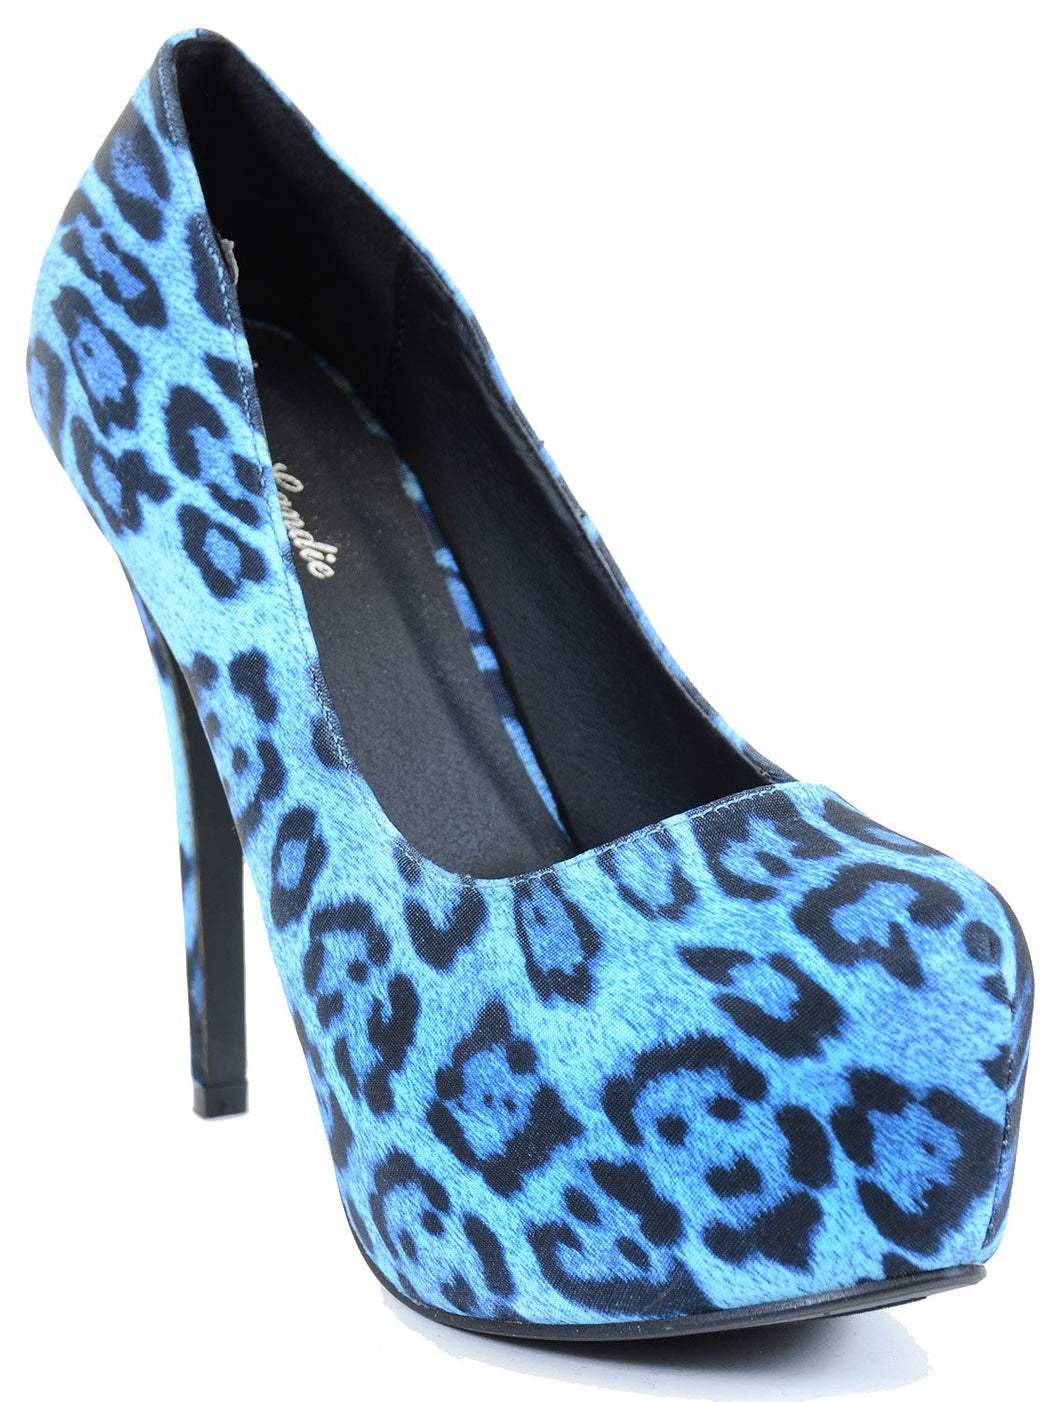 Leopard Classic Vegan Stilleto Hidden Platform Pumps